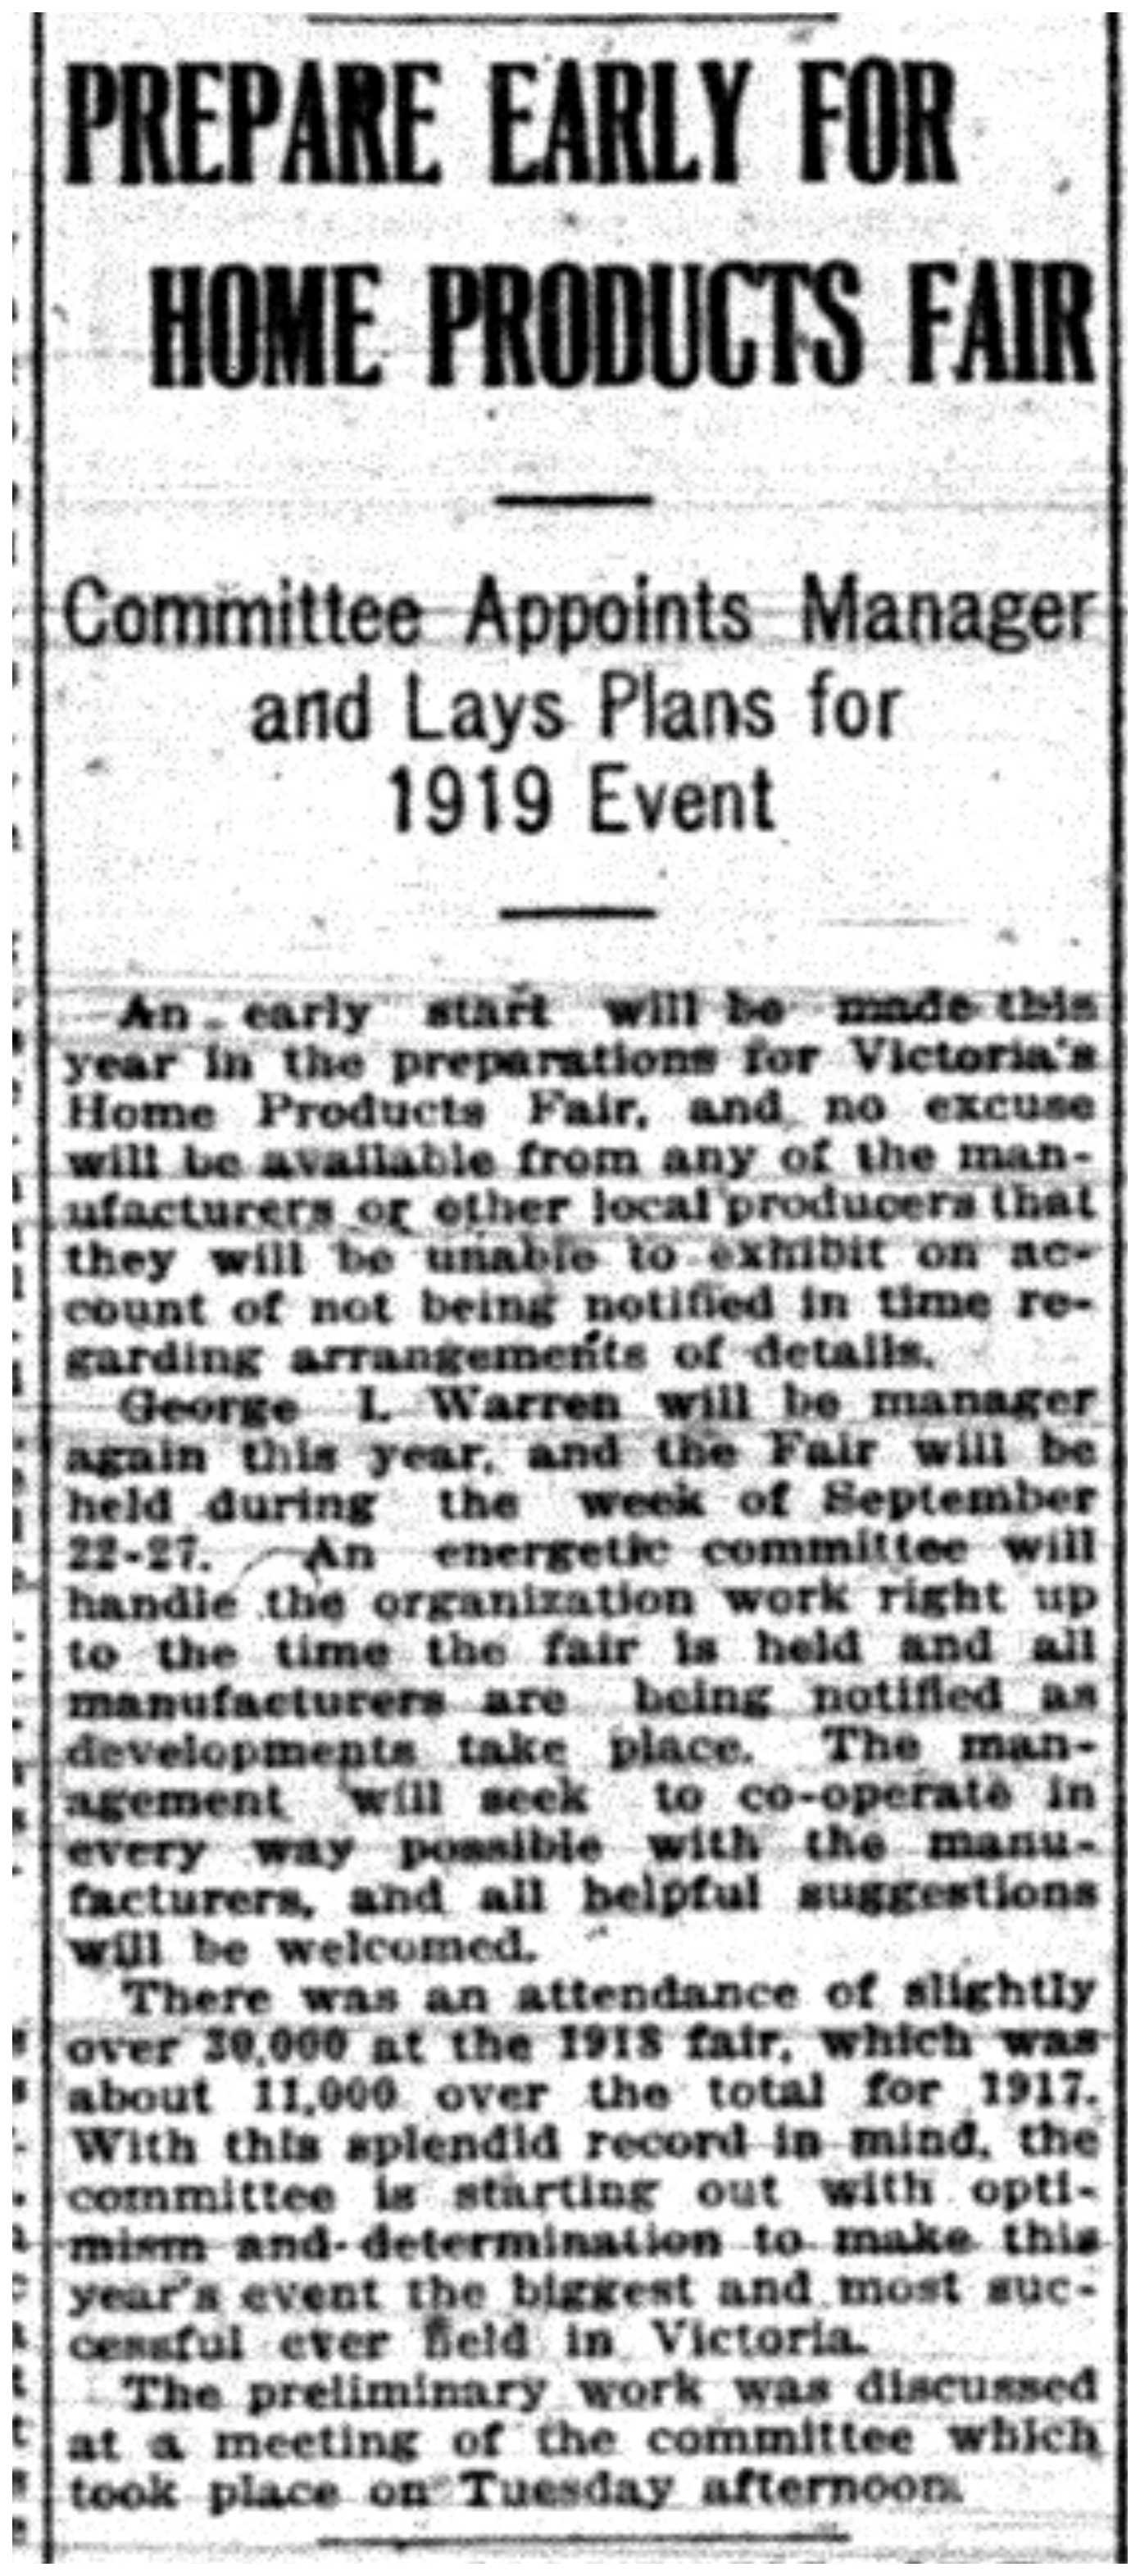 """Prepare Early for Home Products Fair: Committee Appoints Manager and Lays Plans for 1919 Event"""